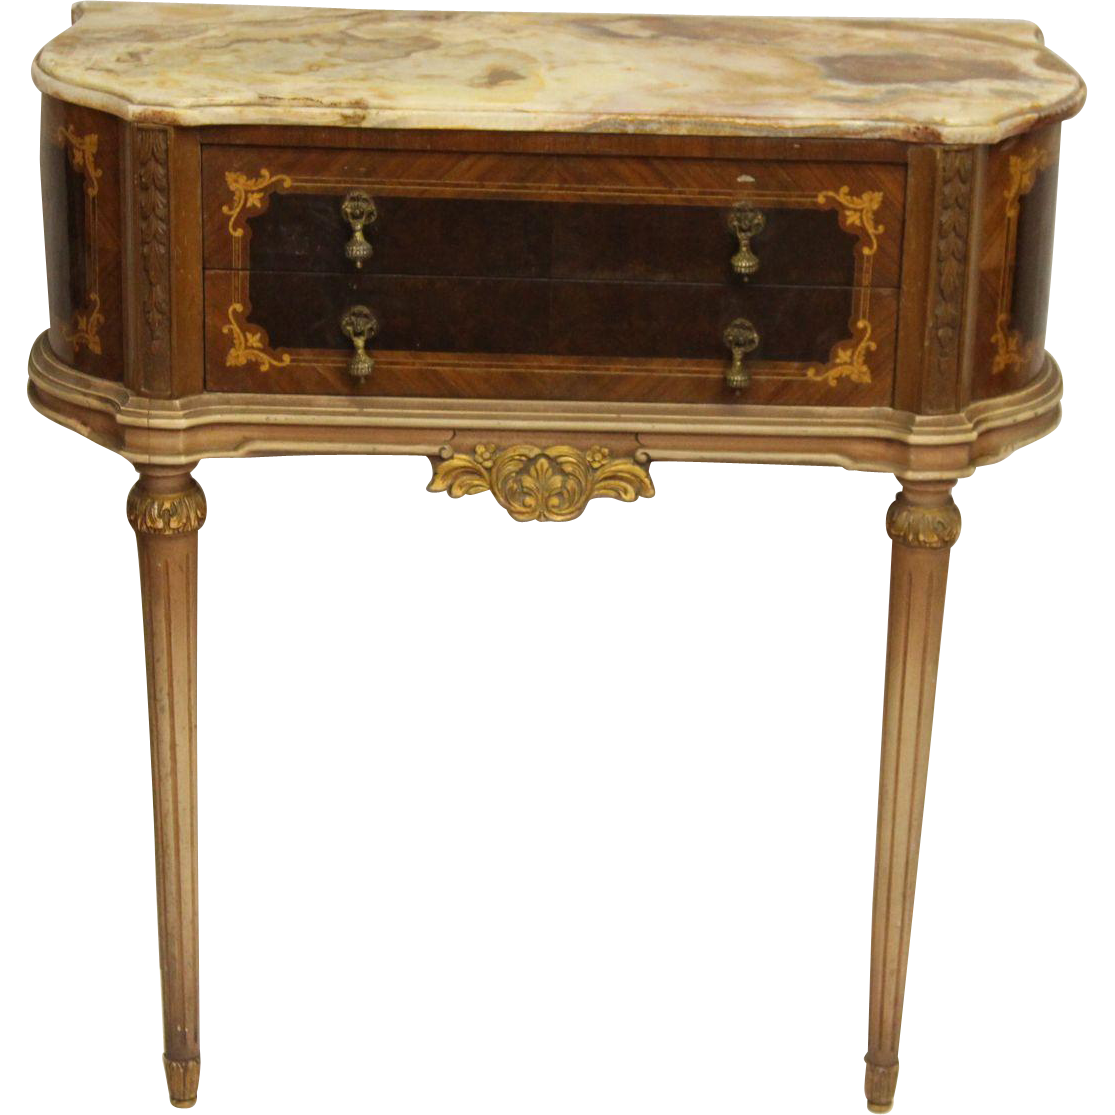 Ornate Federal style marble wall mount table